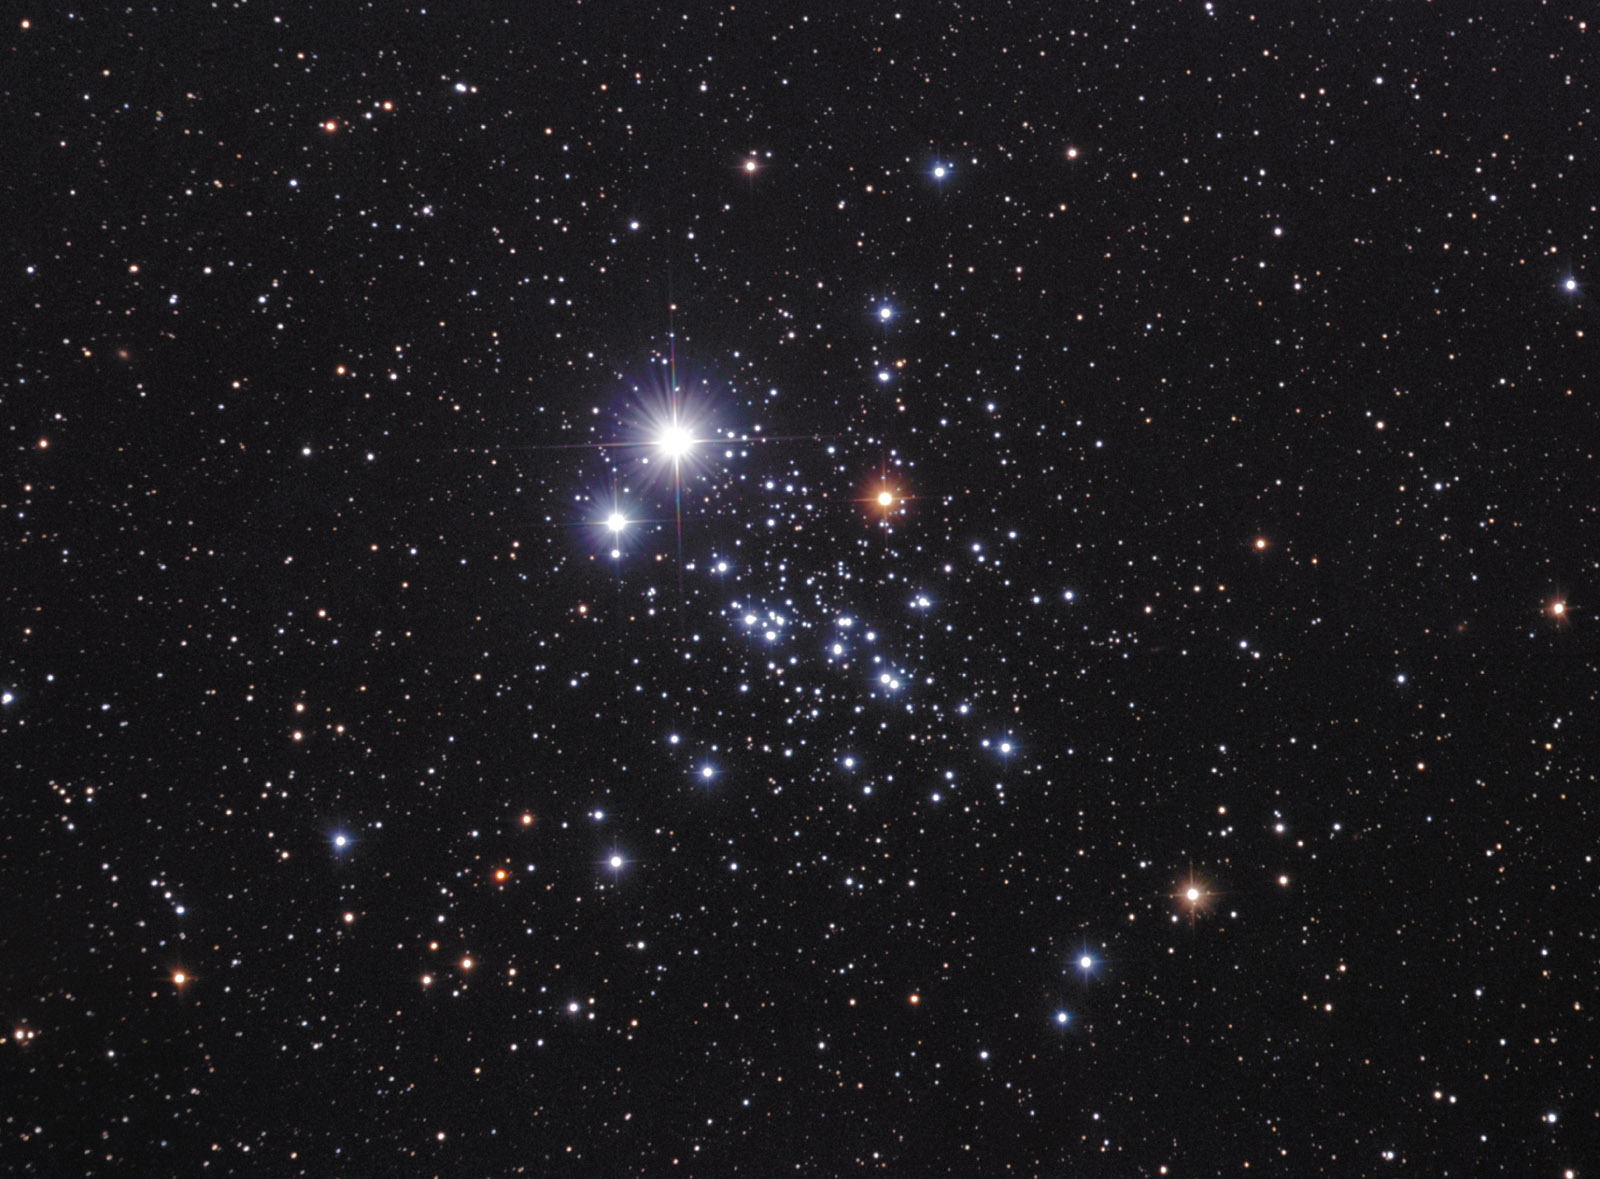 NGC 457 The ET Cluster - some light relief